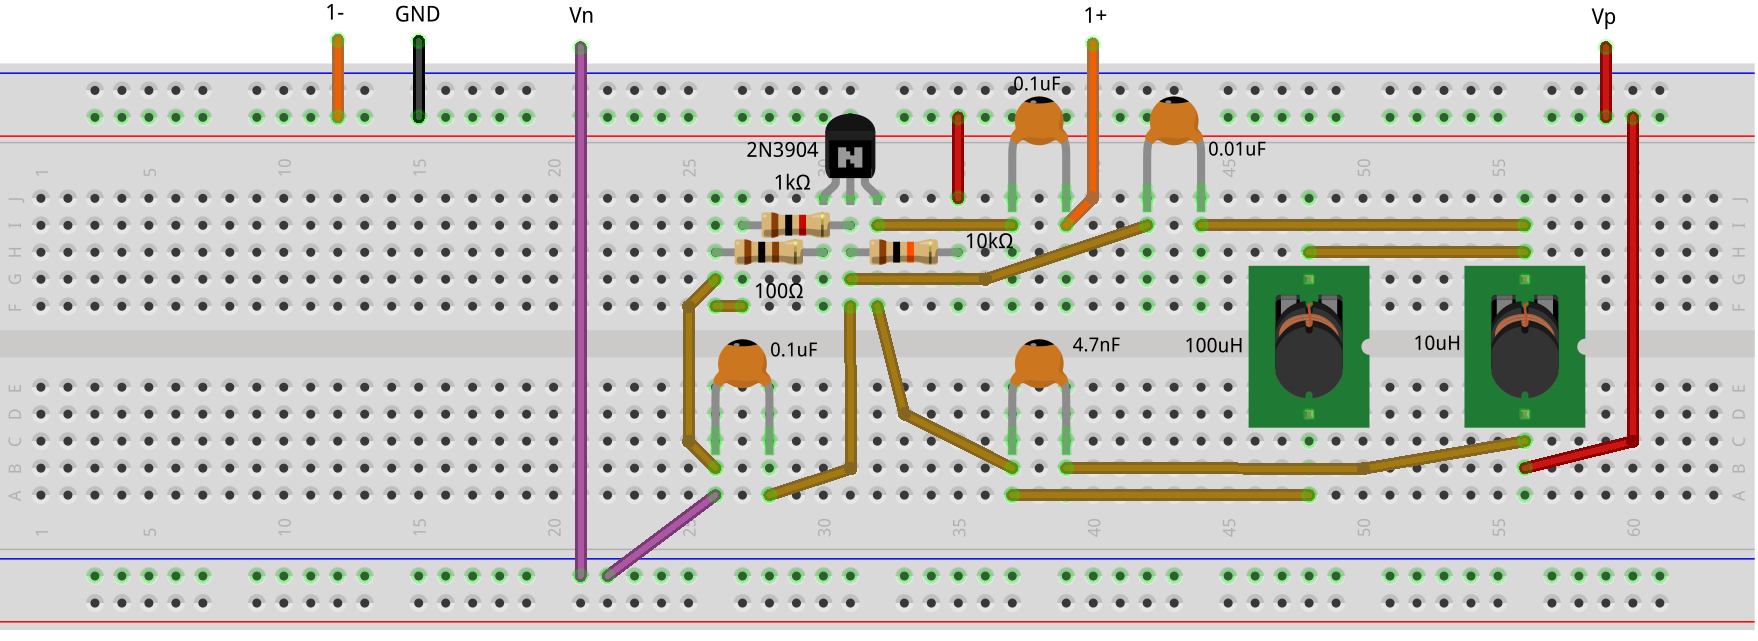 Activity The Hartley Oscillator Analog Devices Wiki Ac Type Of Capacitor 001uf For This Circuit Electrical Figure 3 Breadboard